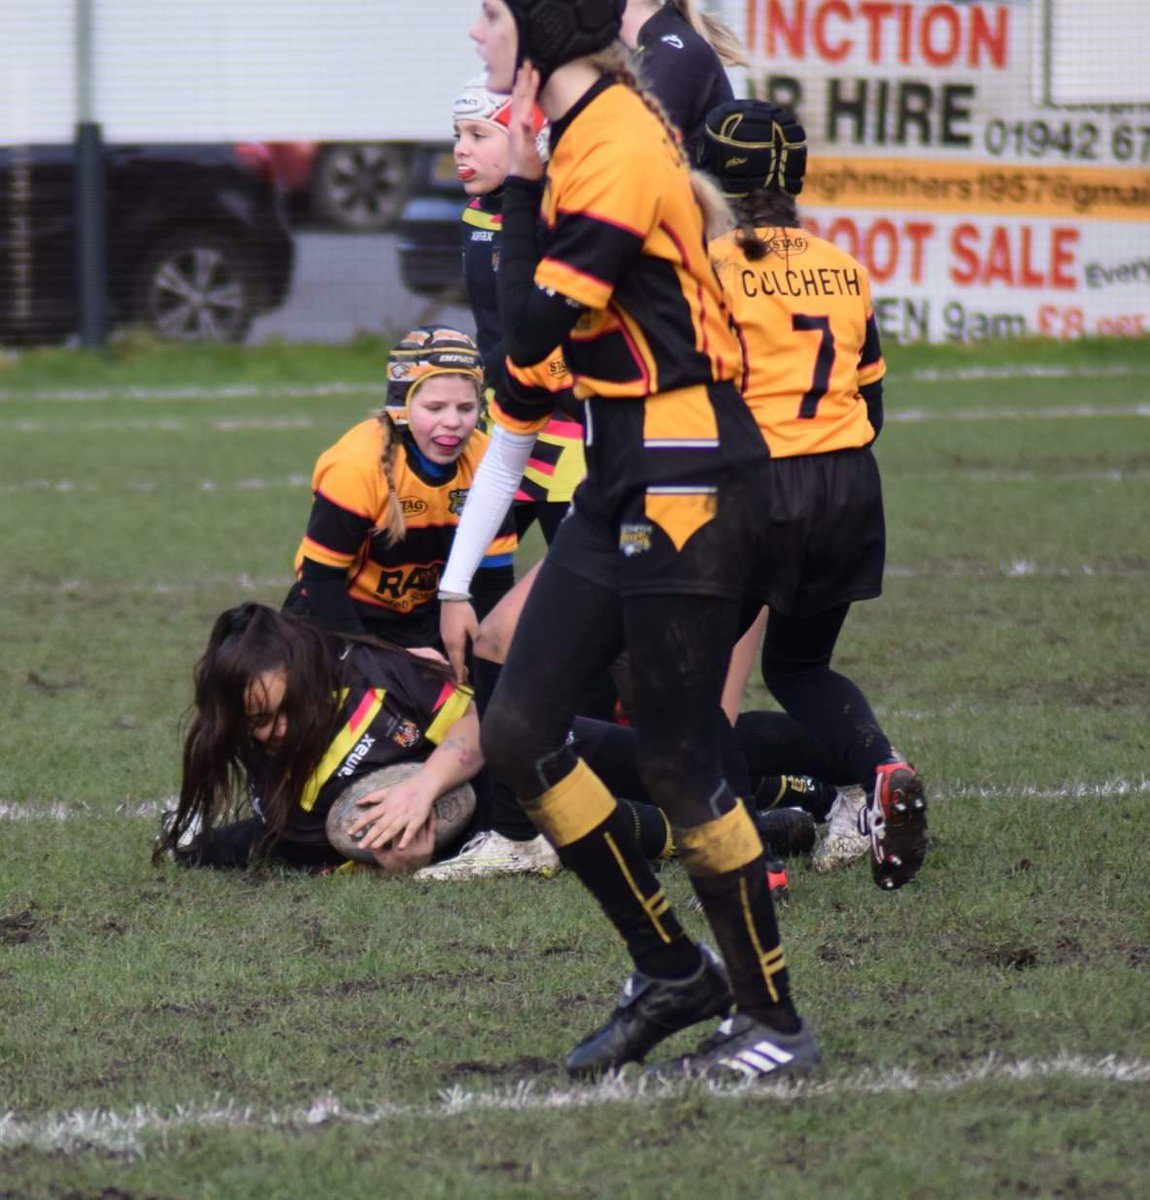 Game day for these awesome @CulchethEagles girls. Looking forward to playing with @AshtonBears, one of the girls favourite opponents. Kick off 1pm at shaw Street, Culcheth if anyone wants to come and support. Followed by our open age vs Unicorns!  #GirlsCan #MoreThanAGame